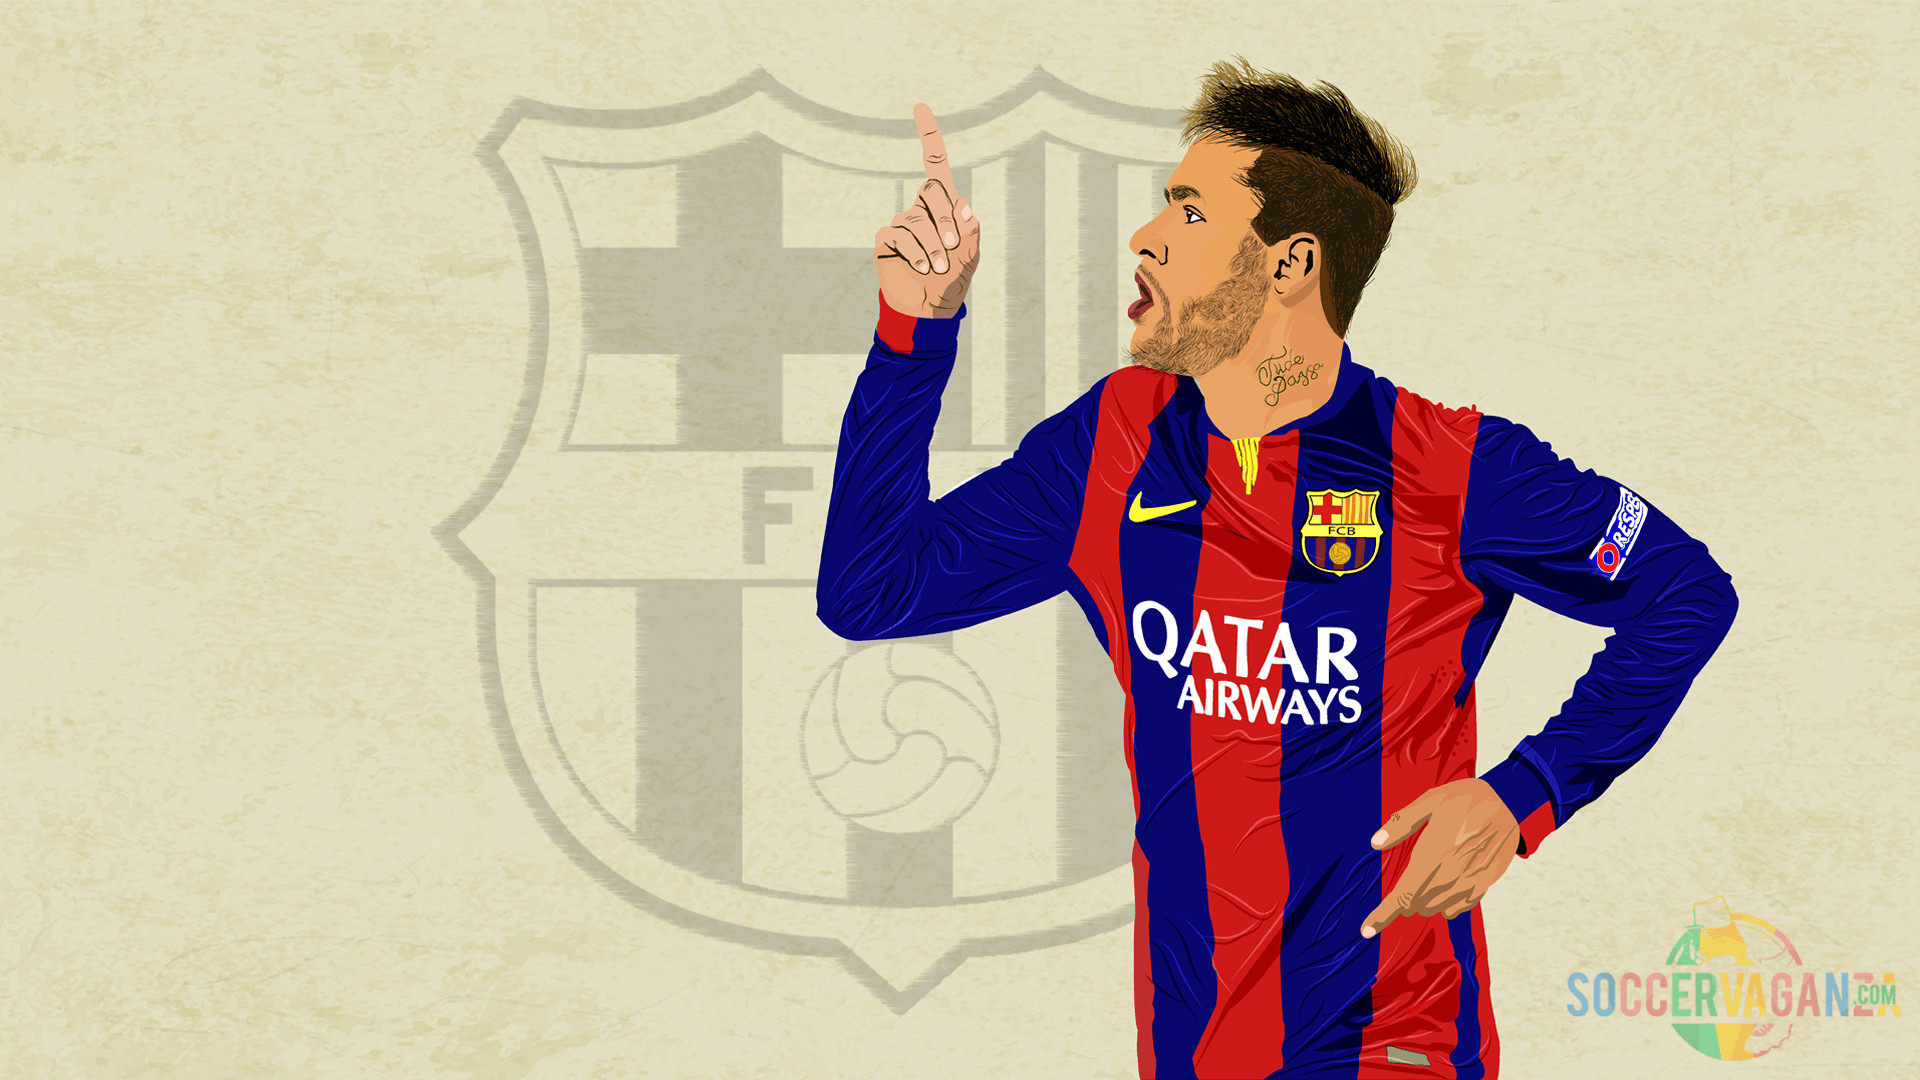 1920x1080 Download Awesome Wallpaper Neymar Jr 2016 | Soccer Vaganza